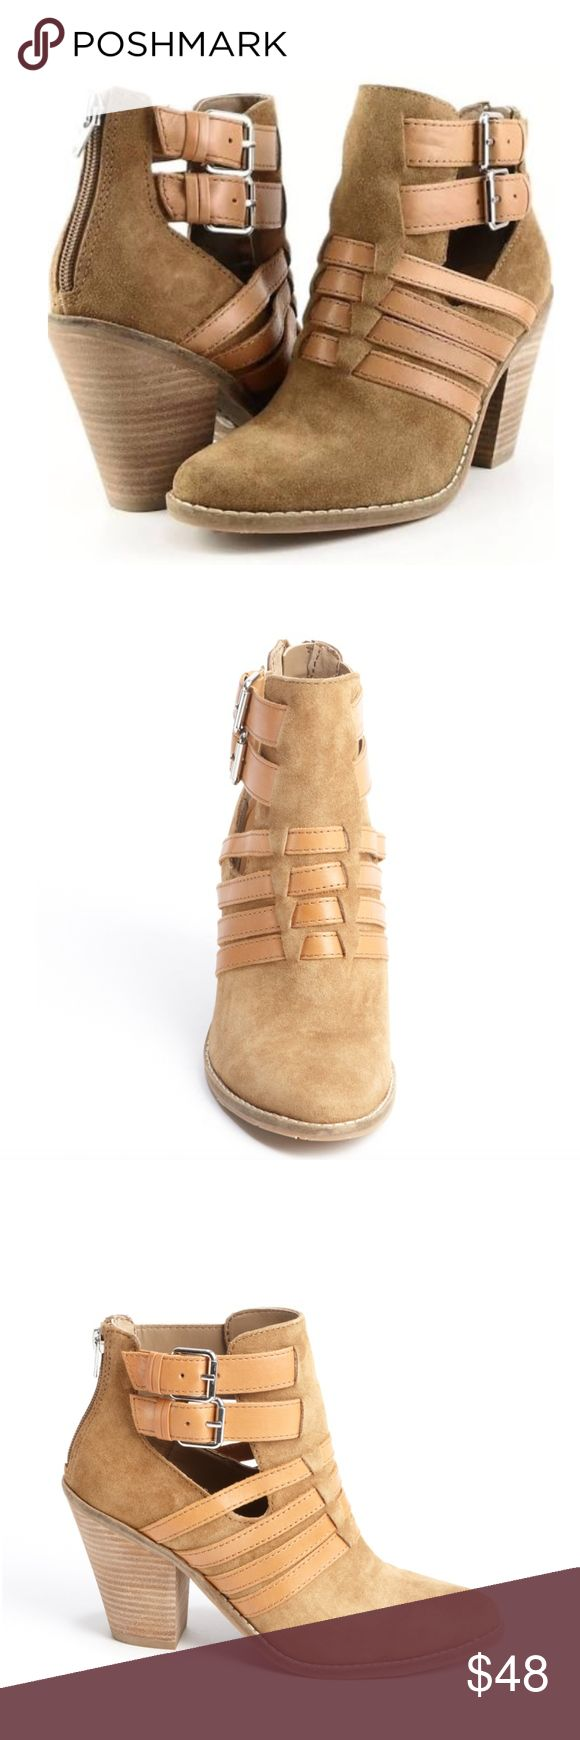 DV Dolce Vita 9M suede leather Caitlynn ankle boot DV by Dolce Vita women's cognac suede leather accent 'Caitlynn' ankle boots  New without box  * DV By Dolce Vita * Smooth Suede Upper * Rounded Toe Shape * Leather Strap Accents With Rear Zipper Closure; Double Buckle Detail On Side * Leather Lining And Sole * 4¼'' Block Heel * Shaft Measures 4'' Tall And 12½'' Around Widest Point * All Measurements Are Approximate * China * Suede / Leather DV by Dolce Vita Shoes Ankle Boots & Booties